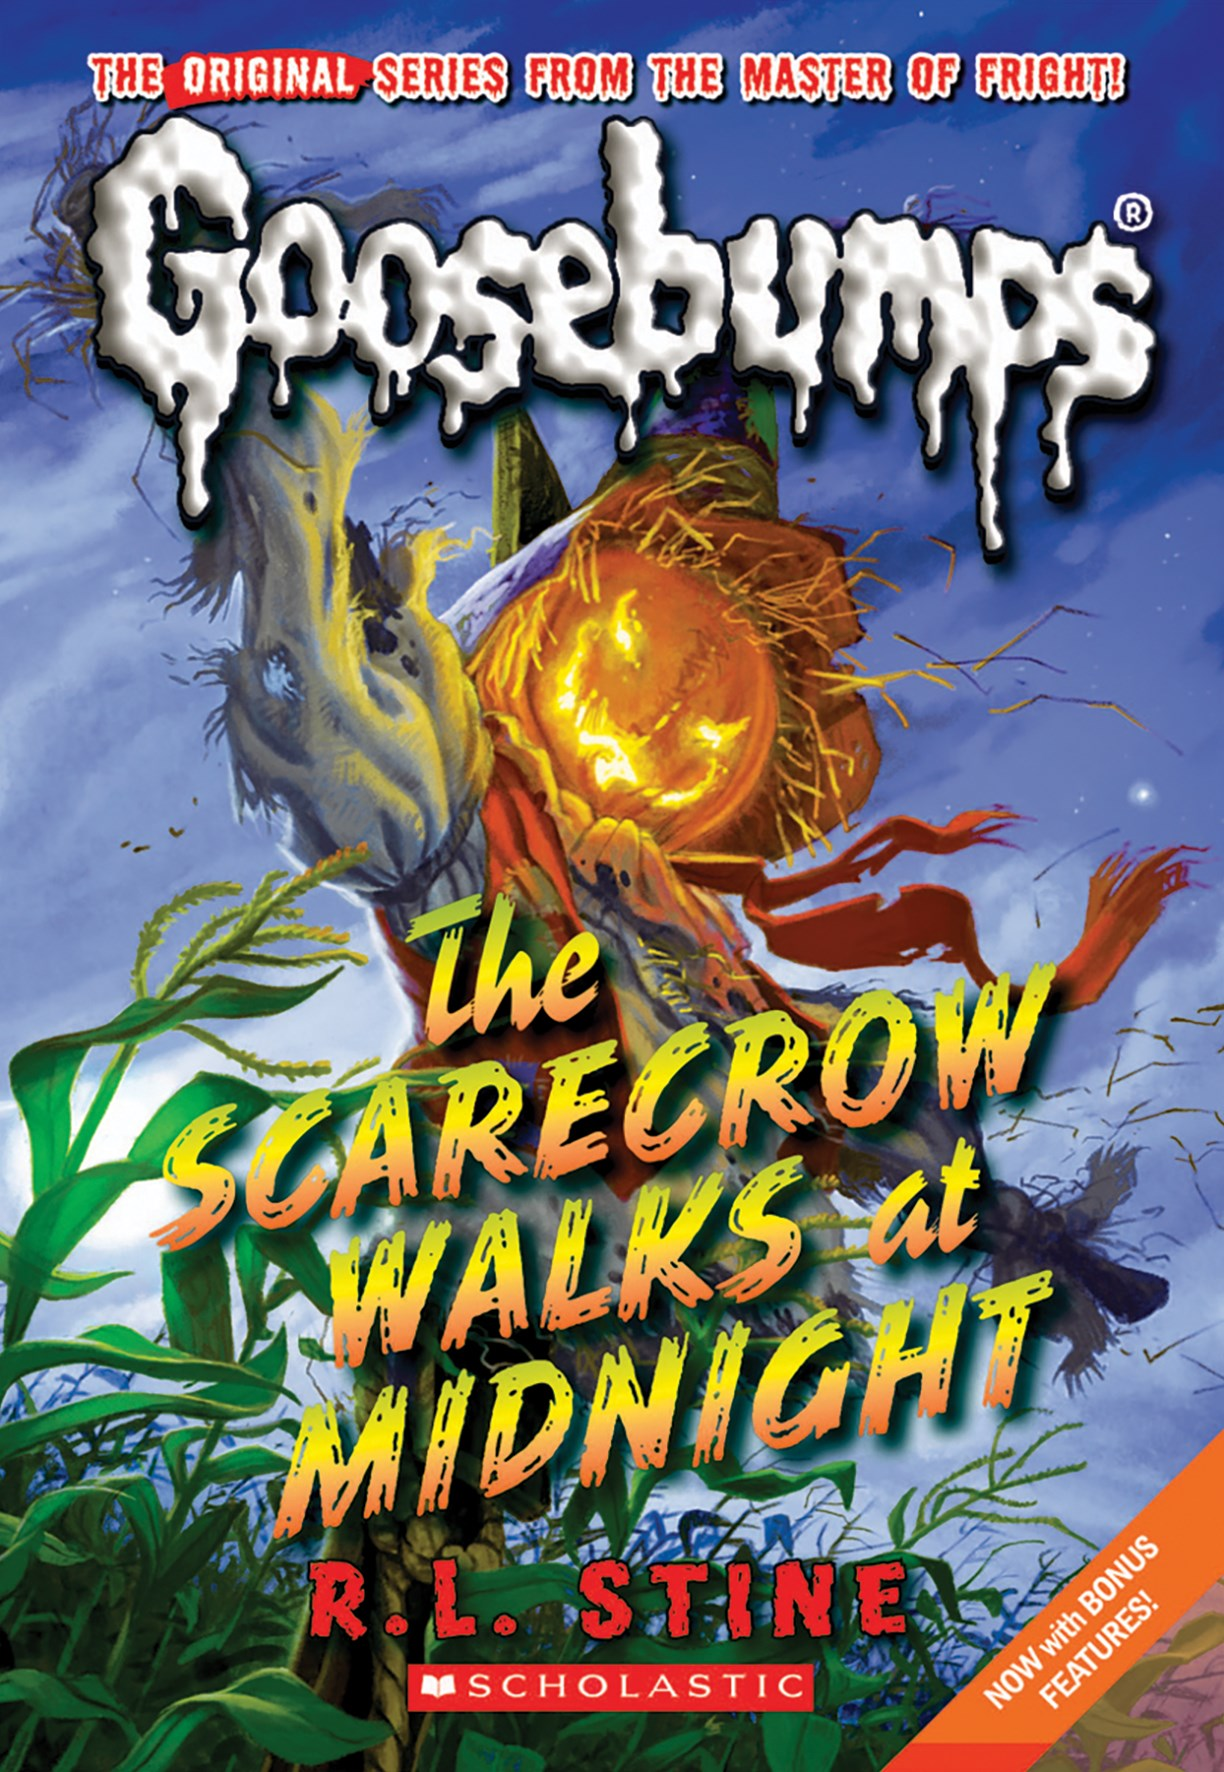 The Scarecrow Walks At Midnight (Goosebumps Classic Book 16)